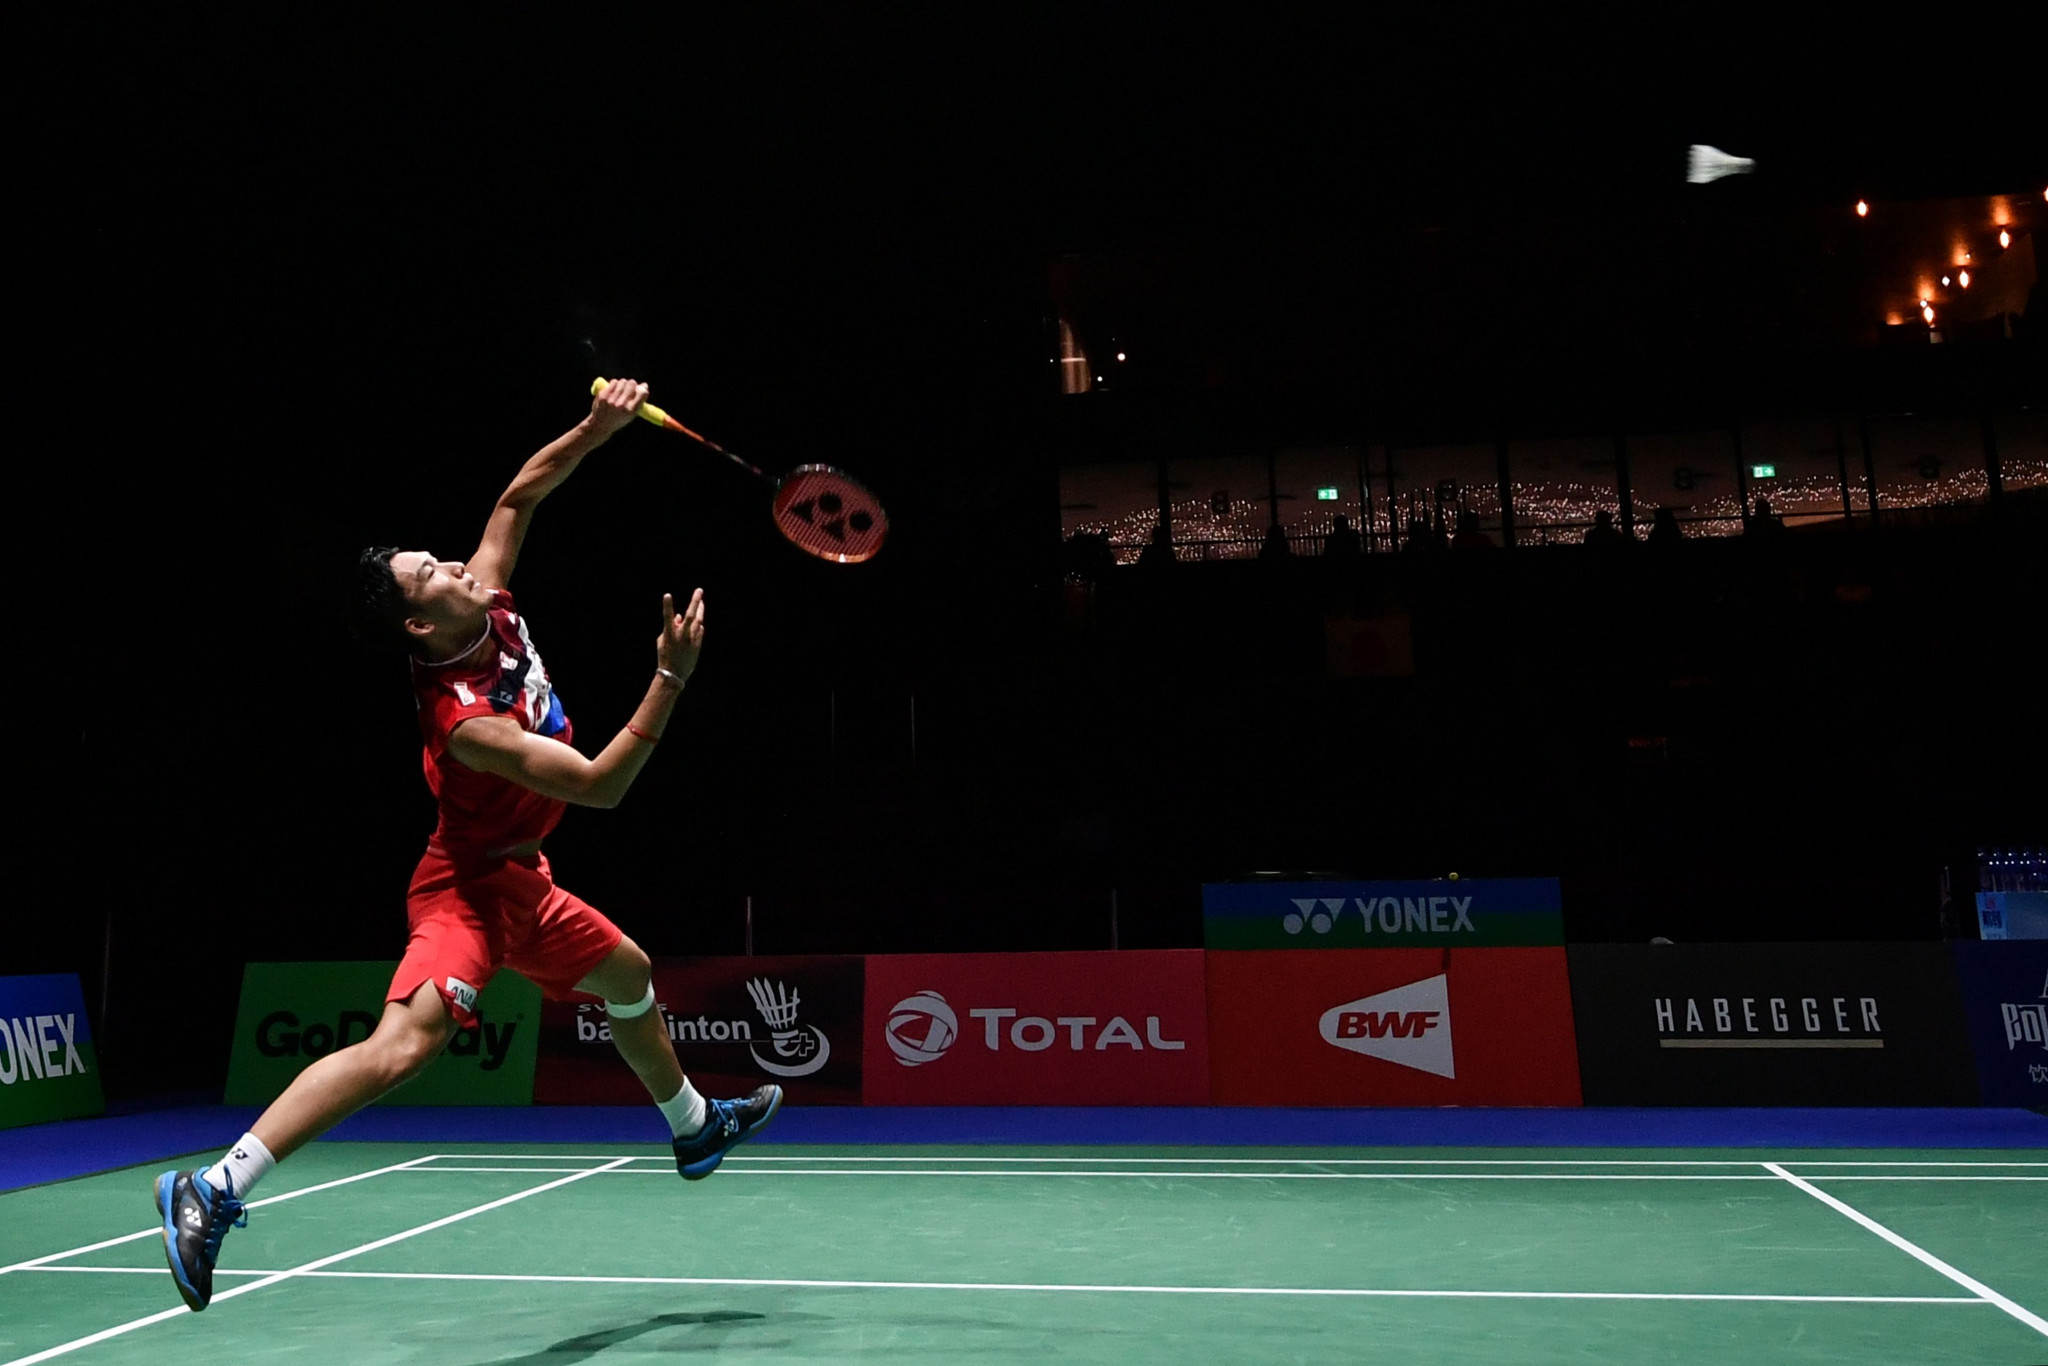 Defending champion Kento Momota eased into the men's singles semi-finals ©Getty Images